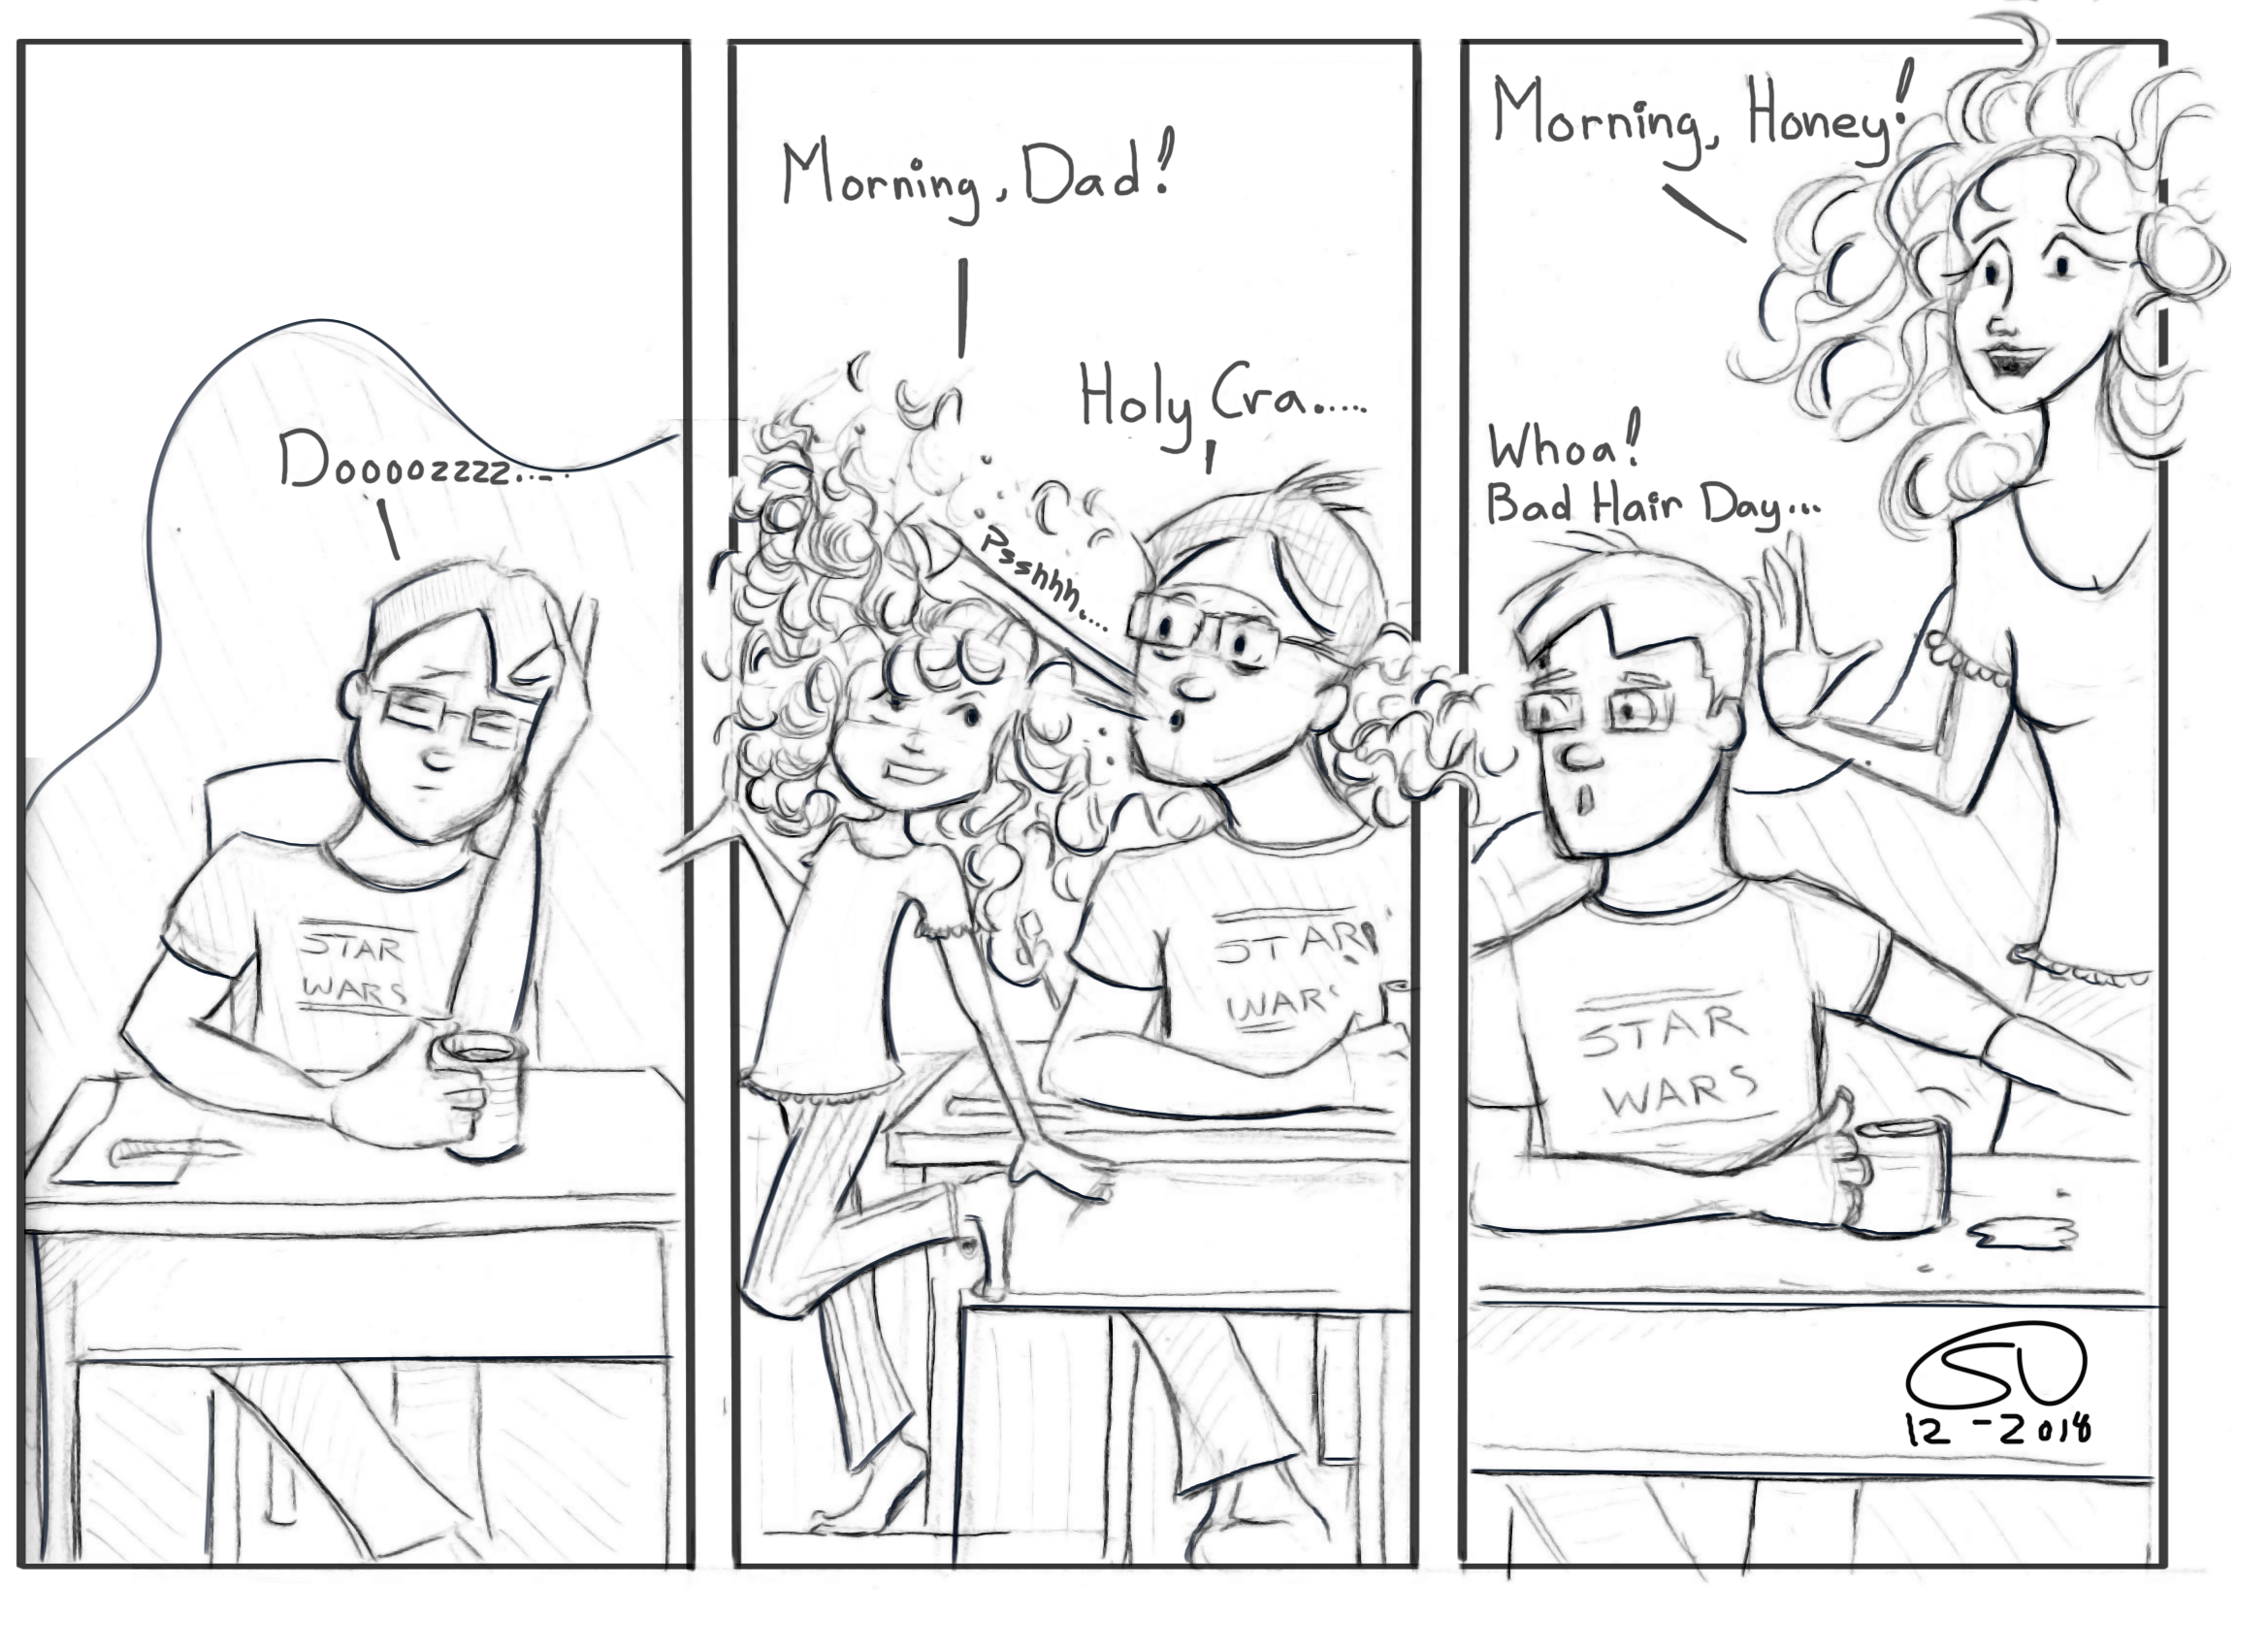 Bed Head Bad Hair Day Morning Person Curly Hair Comic Parenting Family